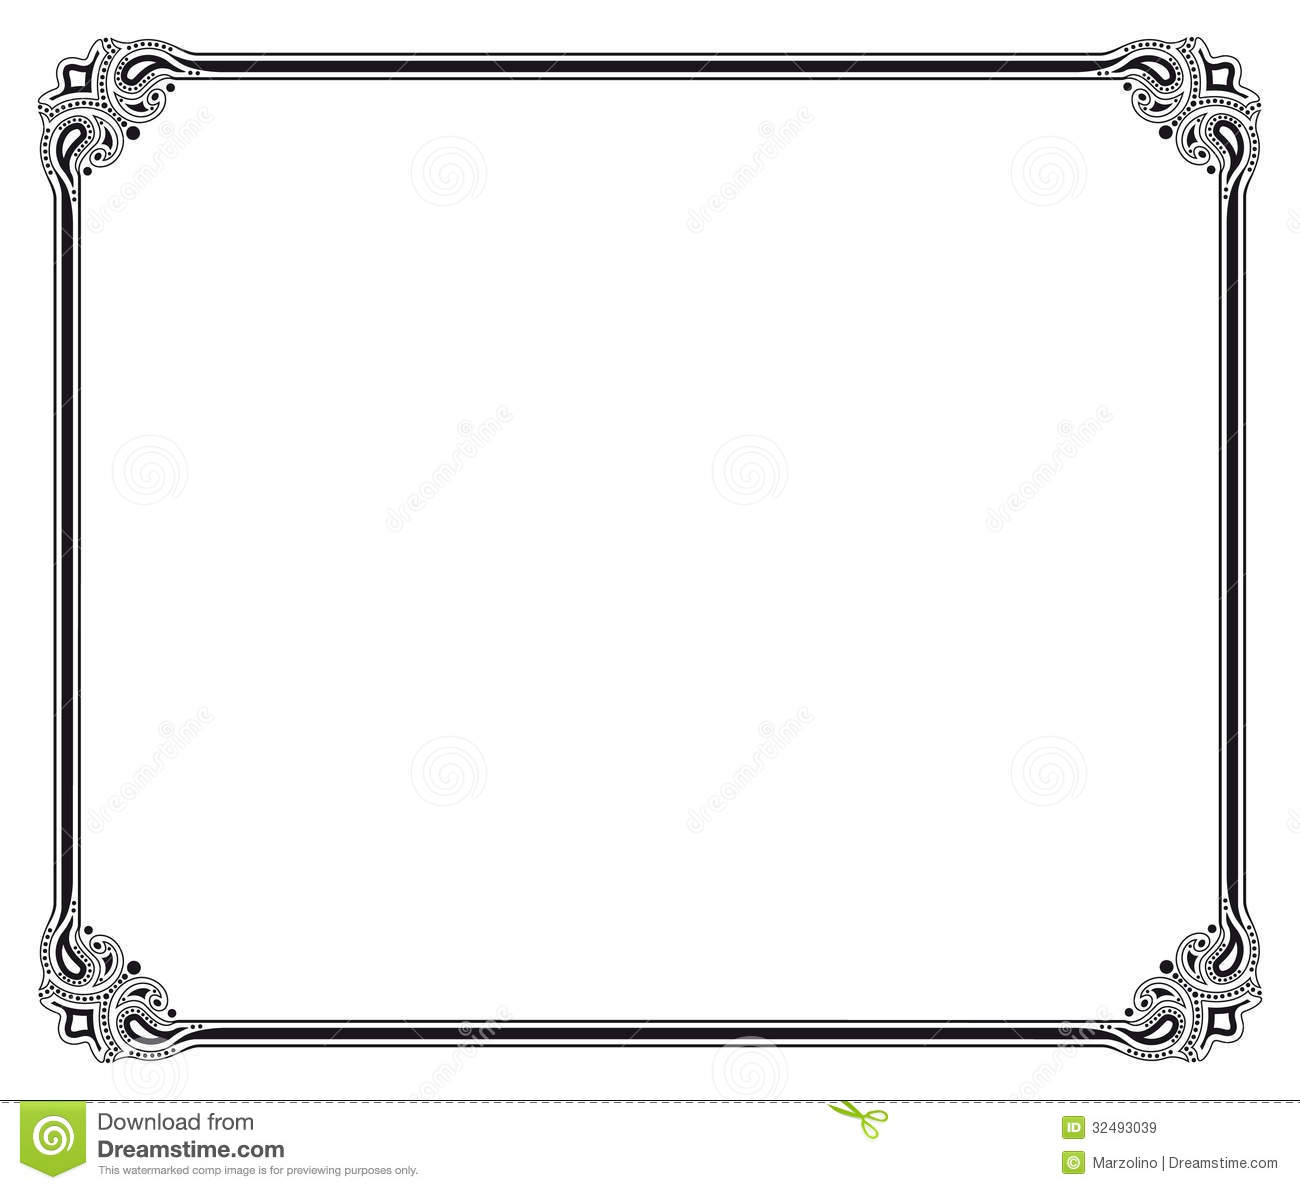 11 Black And White Vintage Frame Vector Images Black White Vintage